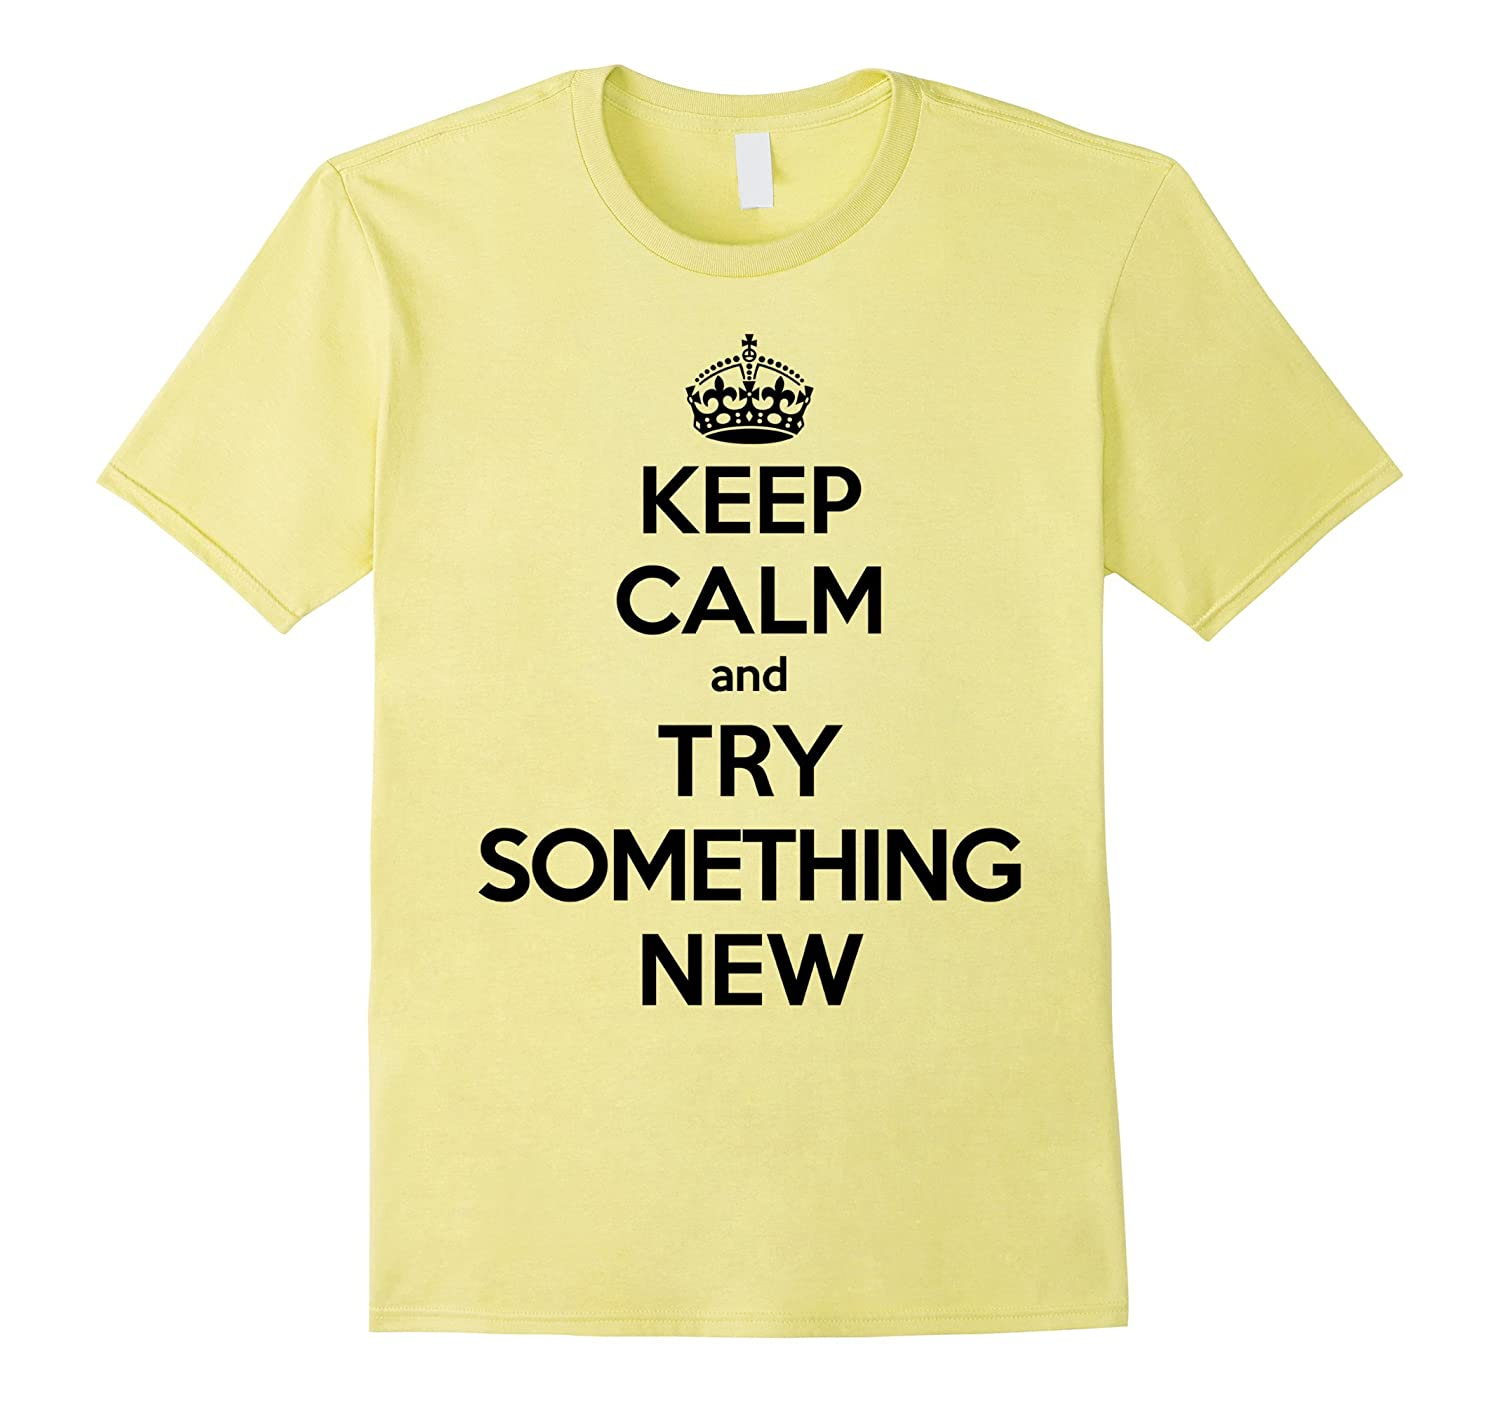 Keep Calm and Try Something New T-Shirt for Dare Day-Vaci